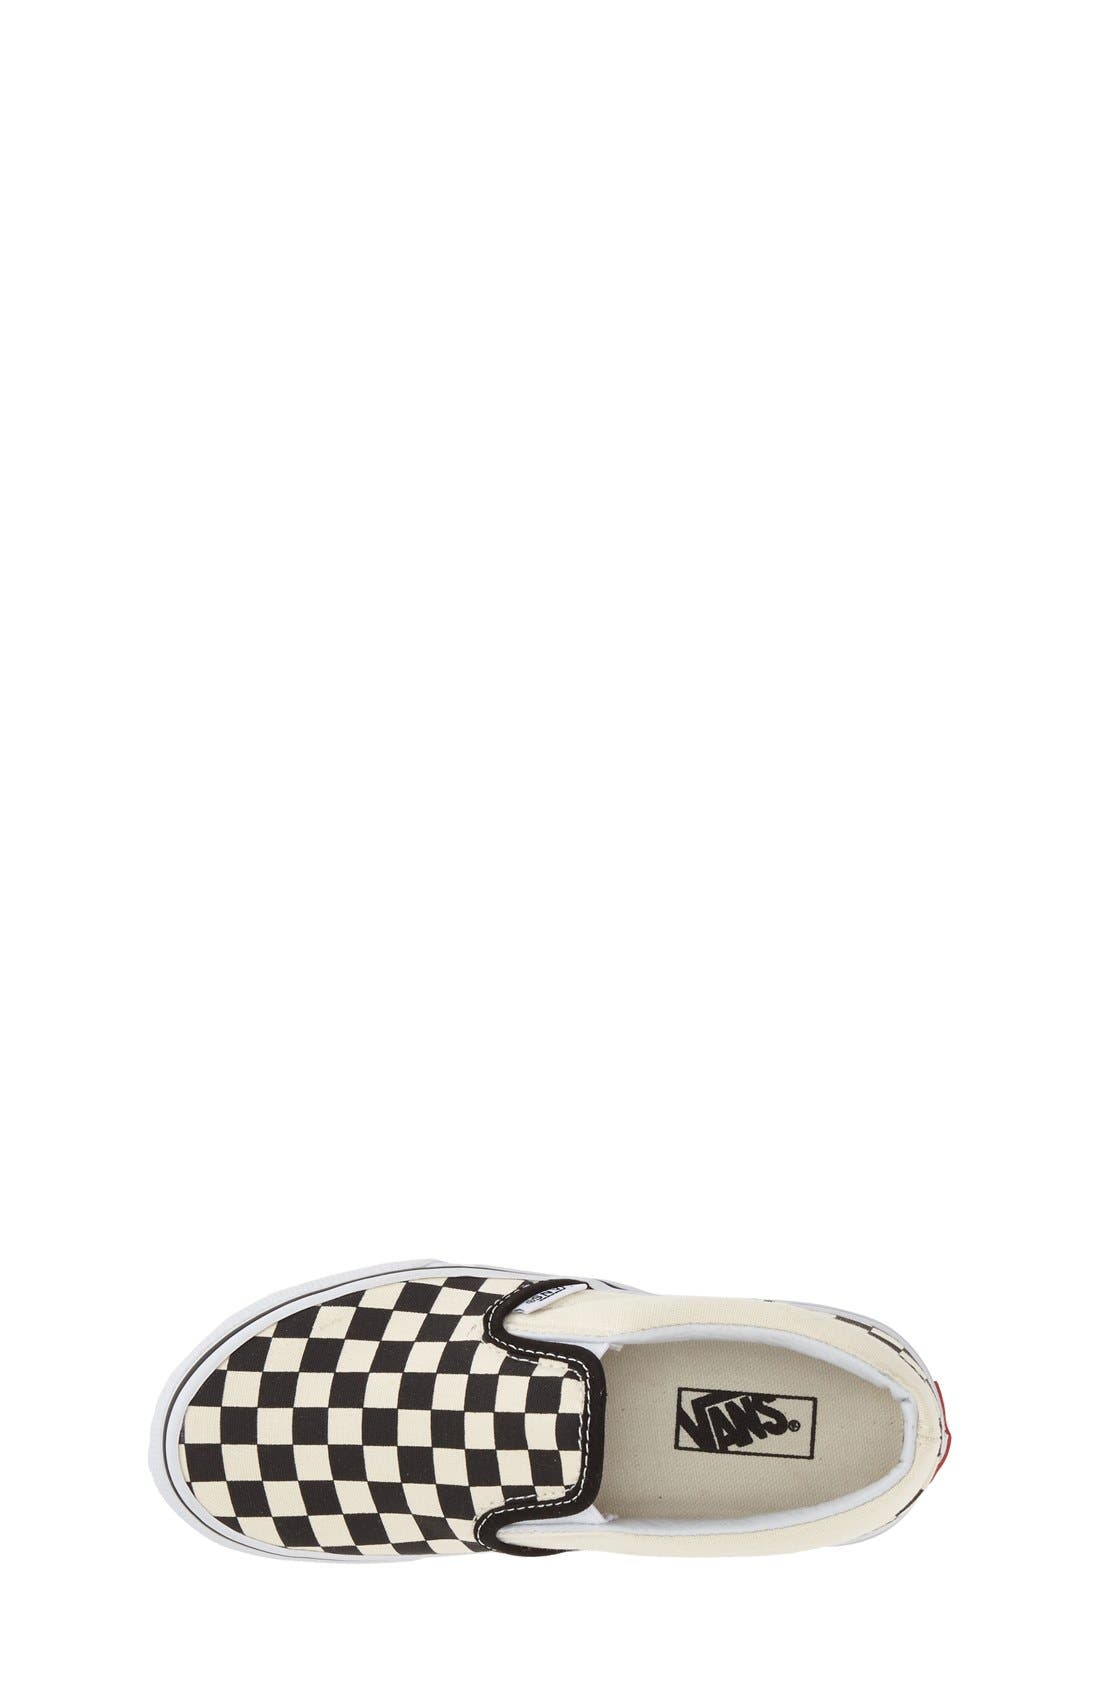 'Classic - Checker' Slip-On,                             Alternate thumbnail 3, color,                             Checkerboard/ Black/ White